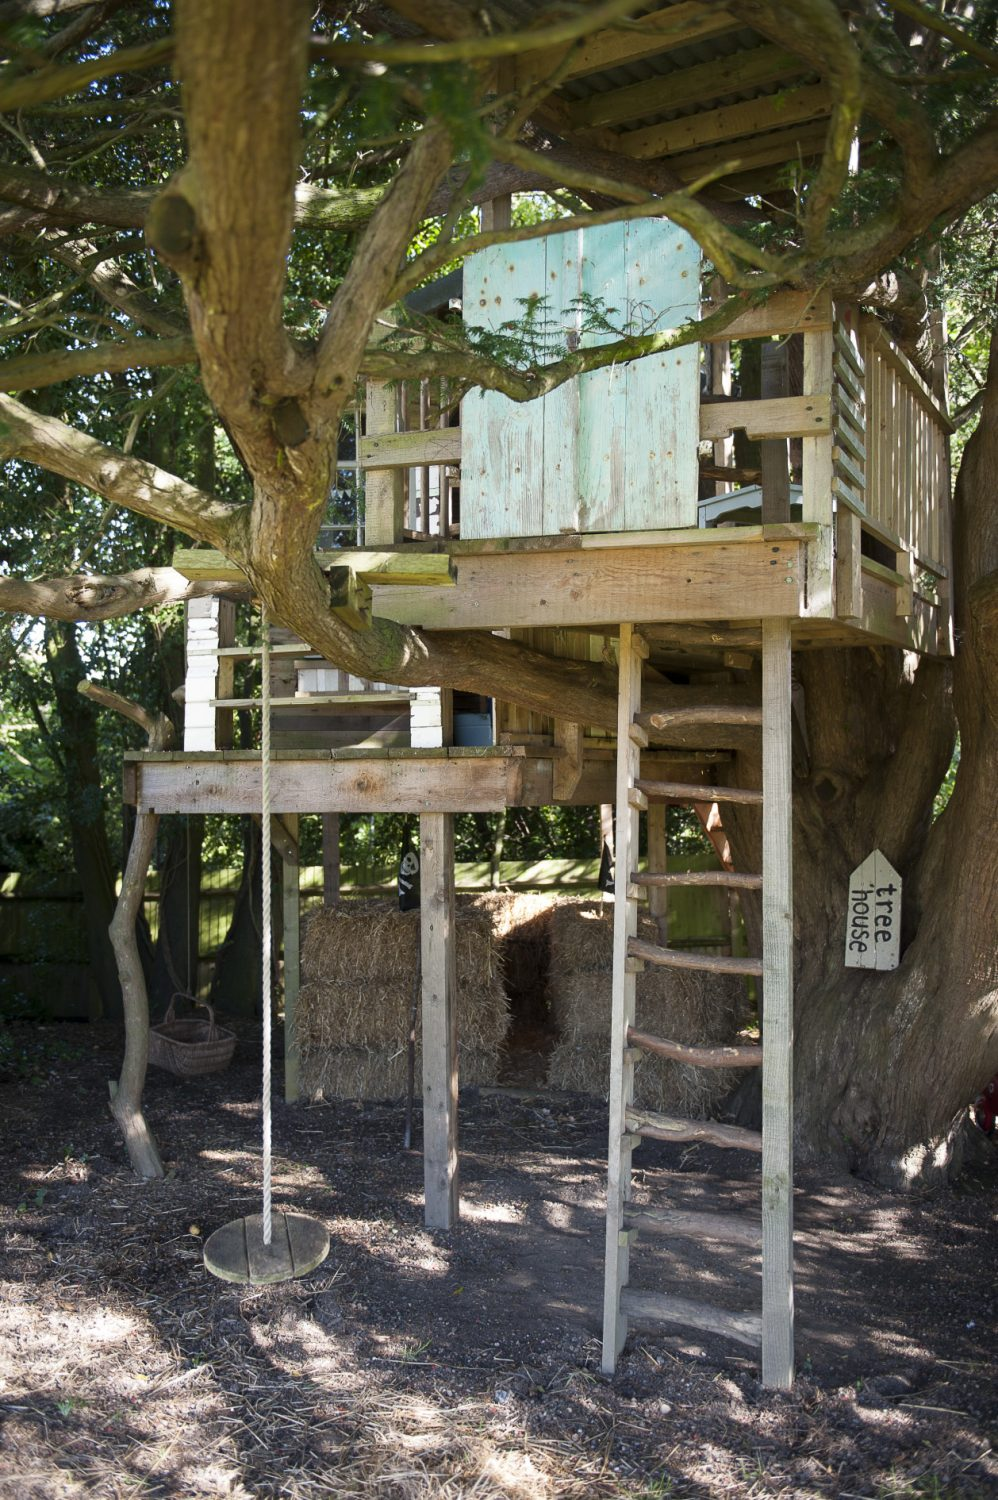 In the garden, an impressive treehouse was built by Rupert Walton, the children's godfather. There is both a rustic ladder and a staircase to the deck and the little cabin has been beautifully constructed from reclaimed materials including a fine Regency style arched window